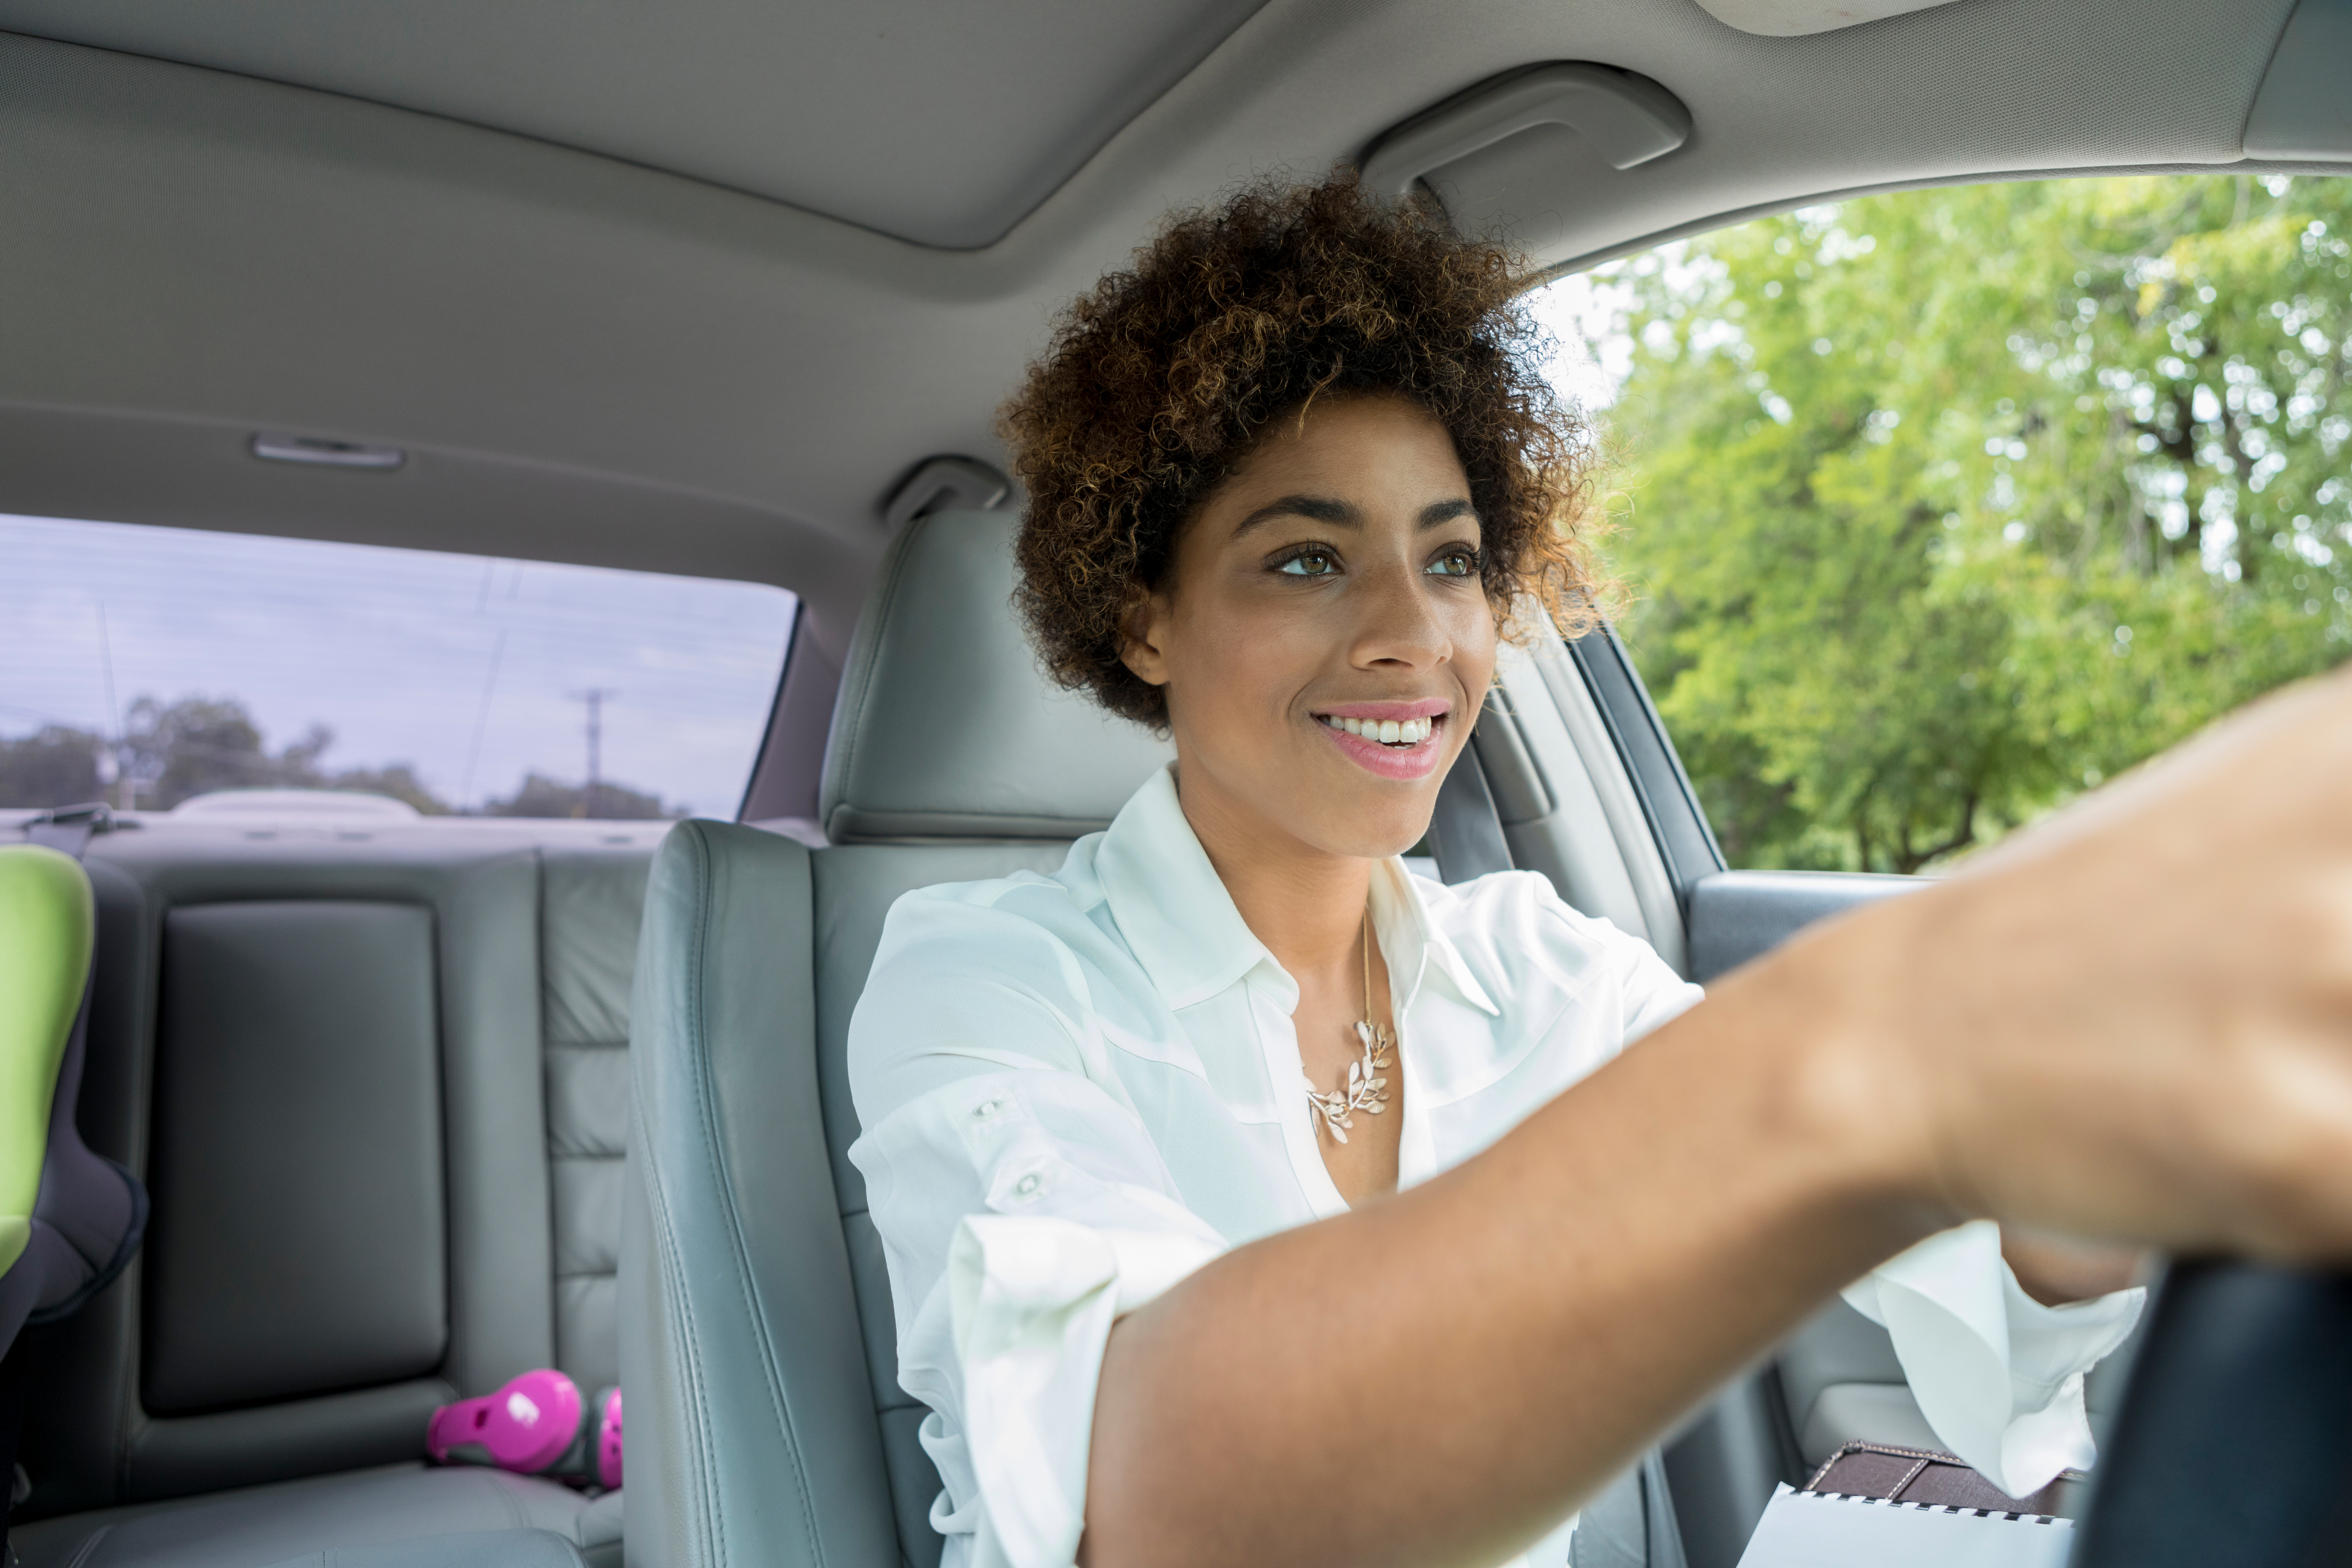 Smiling young woman driving her car on a sunny day